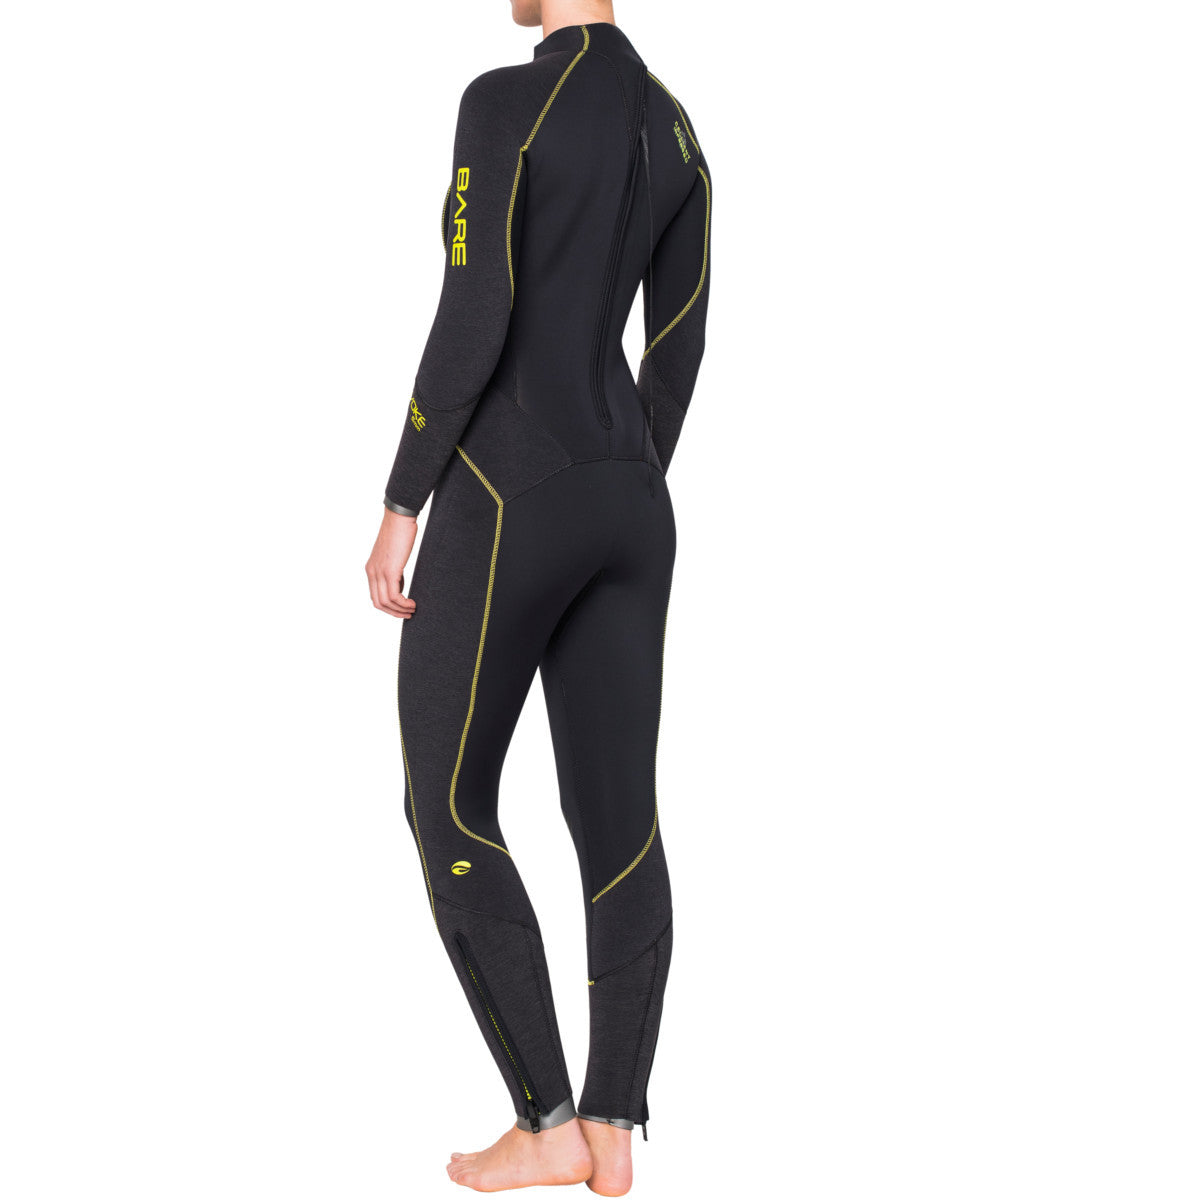 Bare Evoke 7mm Wetsuit: Womens - Oyster Diving Shop - 2